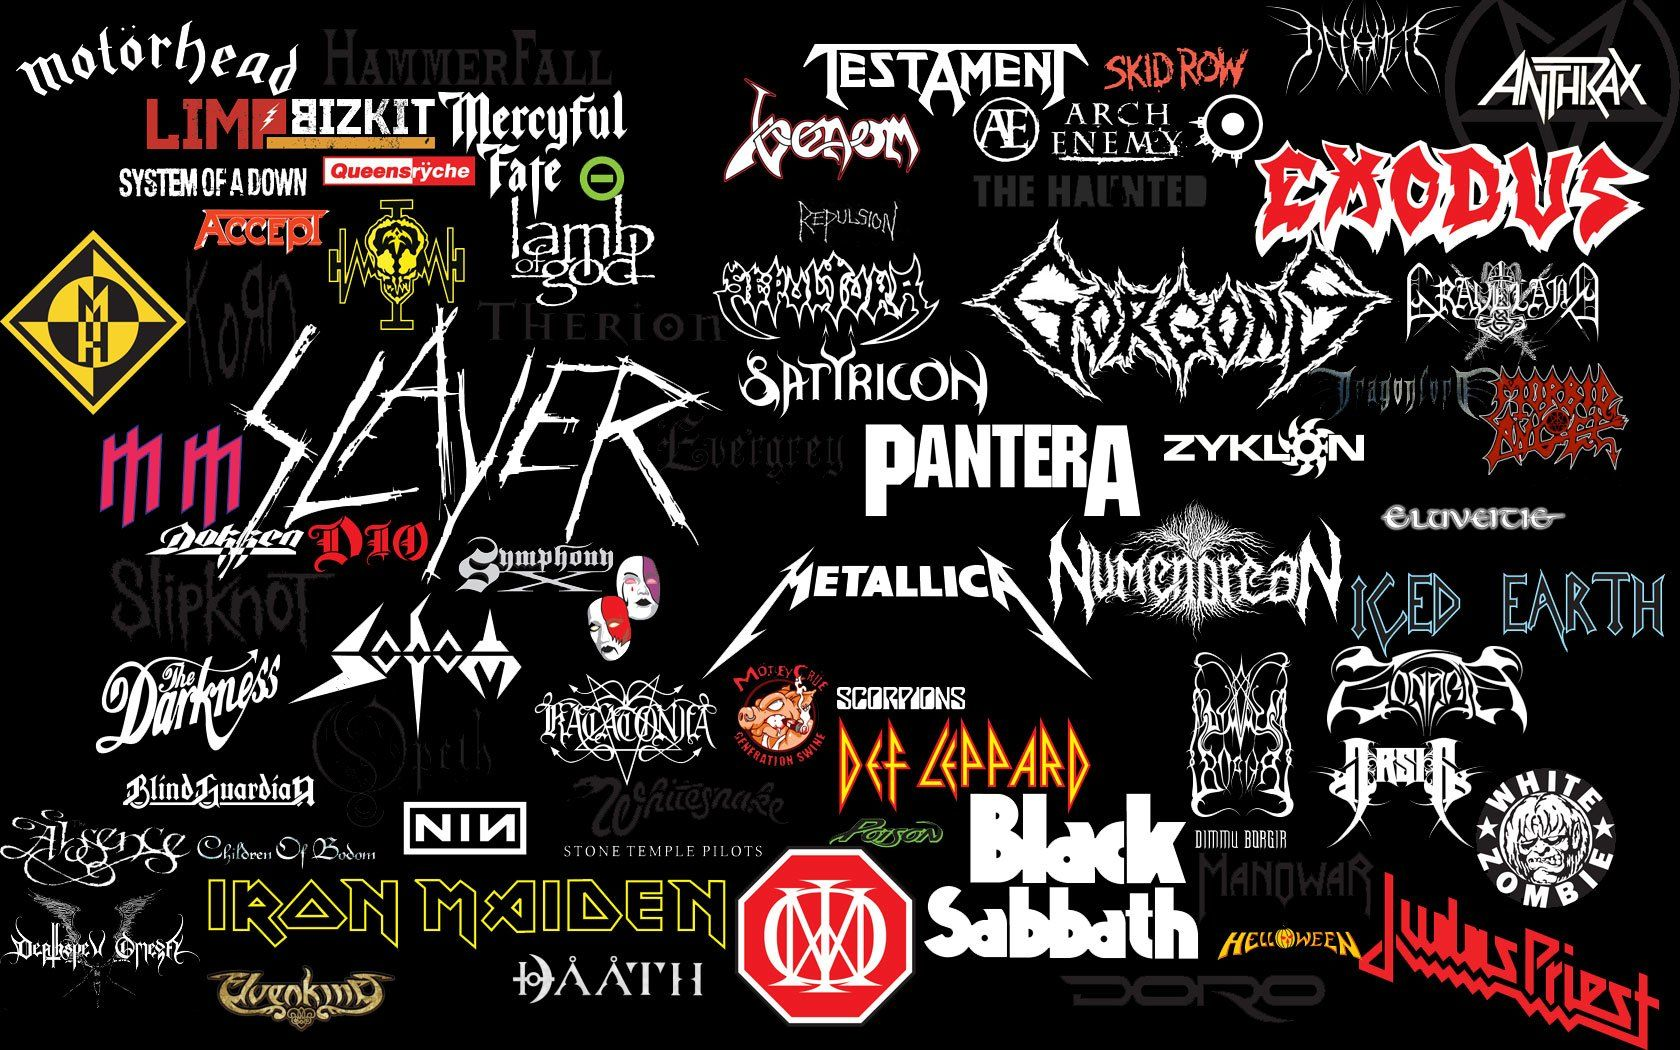 49 Heavy Metal Hd Wallpapers Backgrounds Wallpaper Abyss Metal Band Logos Metal Music Quotes Metal Music